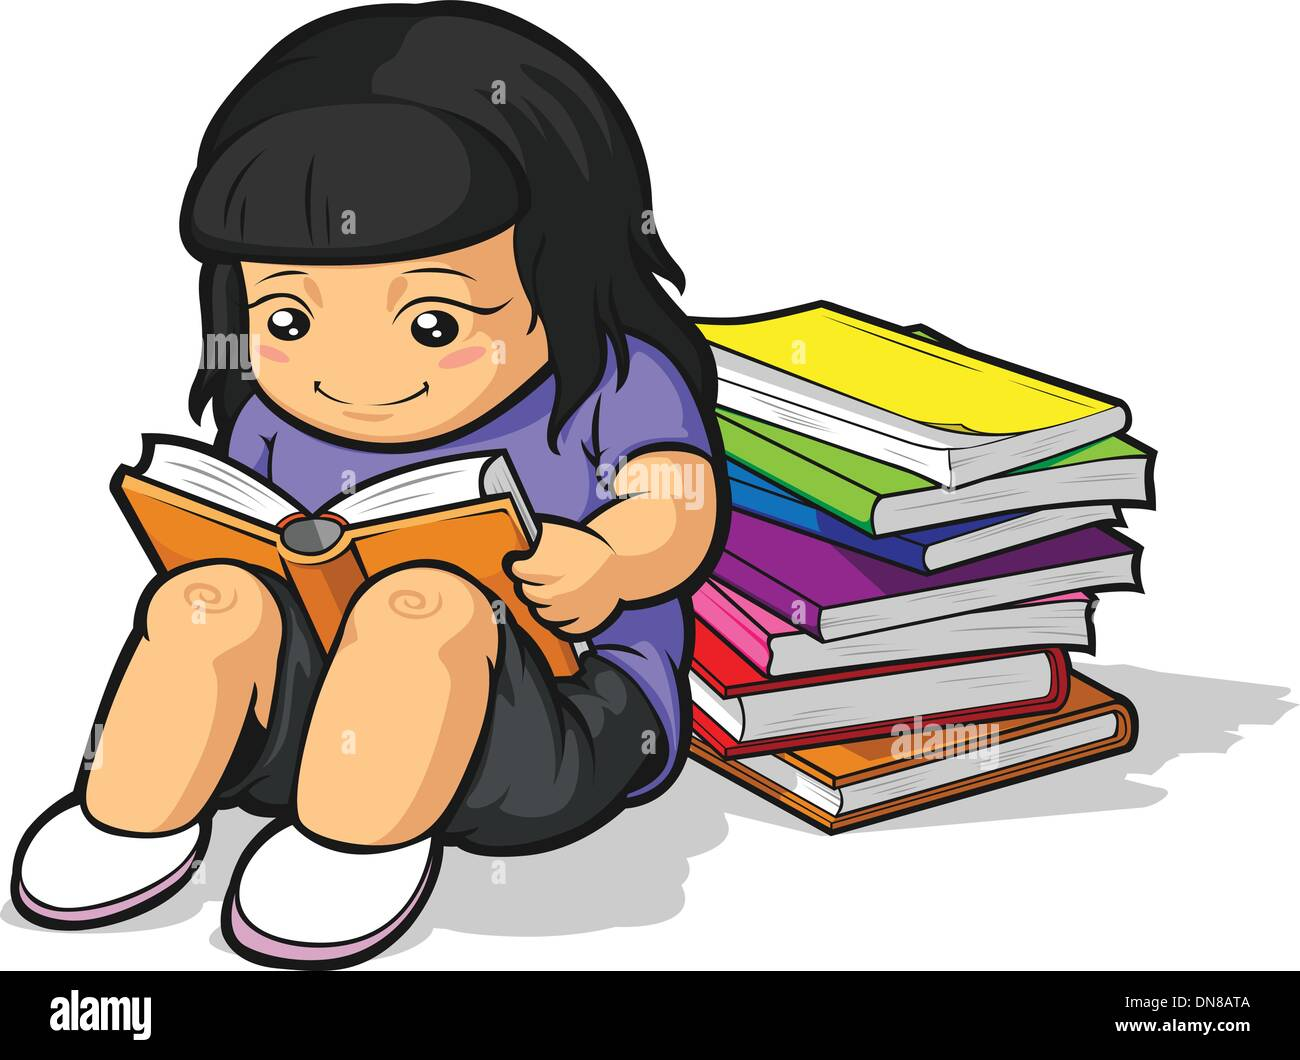 Cartoon Of Girl Student Studying & Reading Book Stock